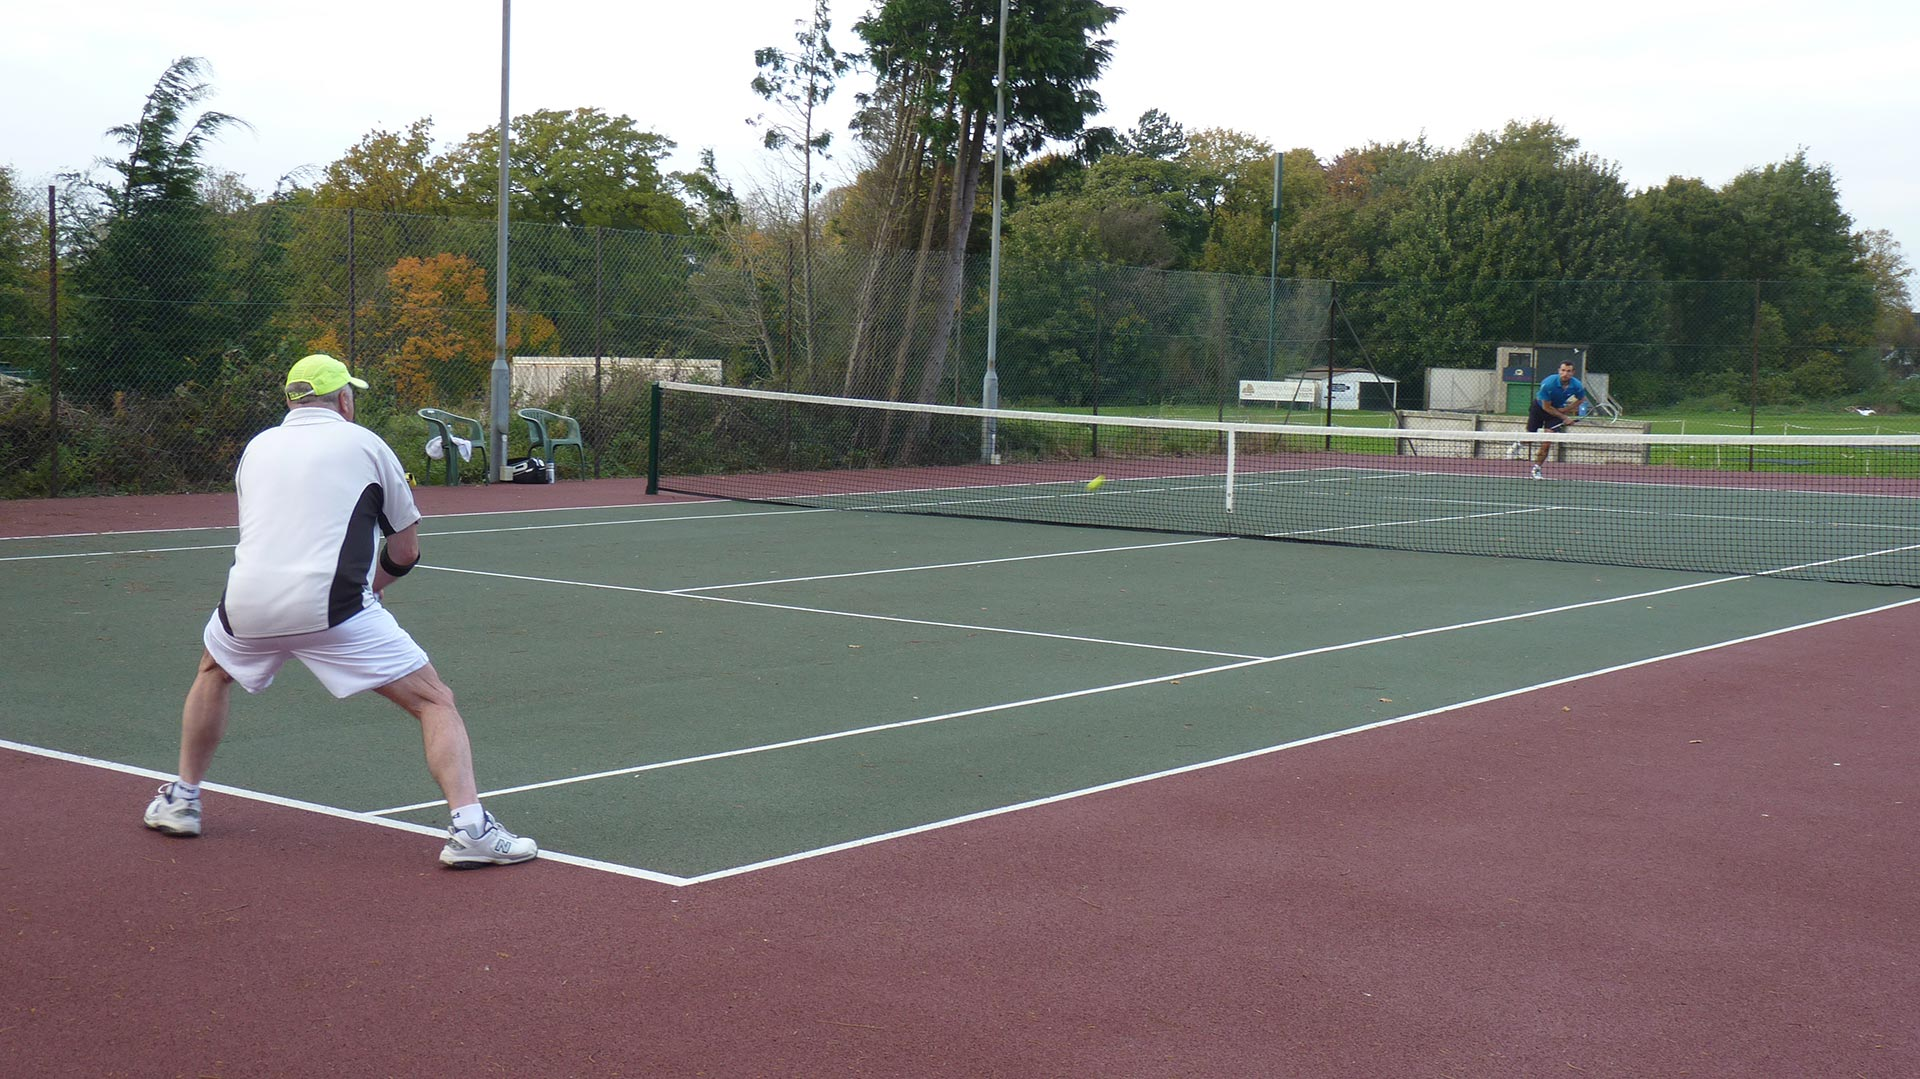 What's On - Club news, upcoming events and key dates plus a calendar for court availability